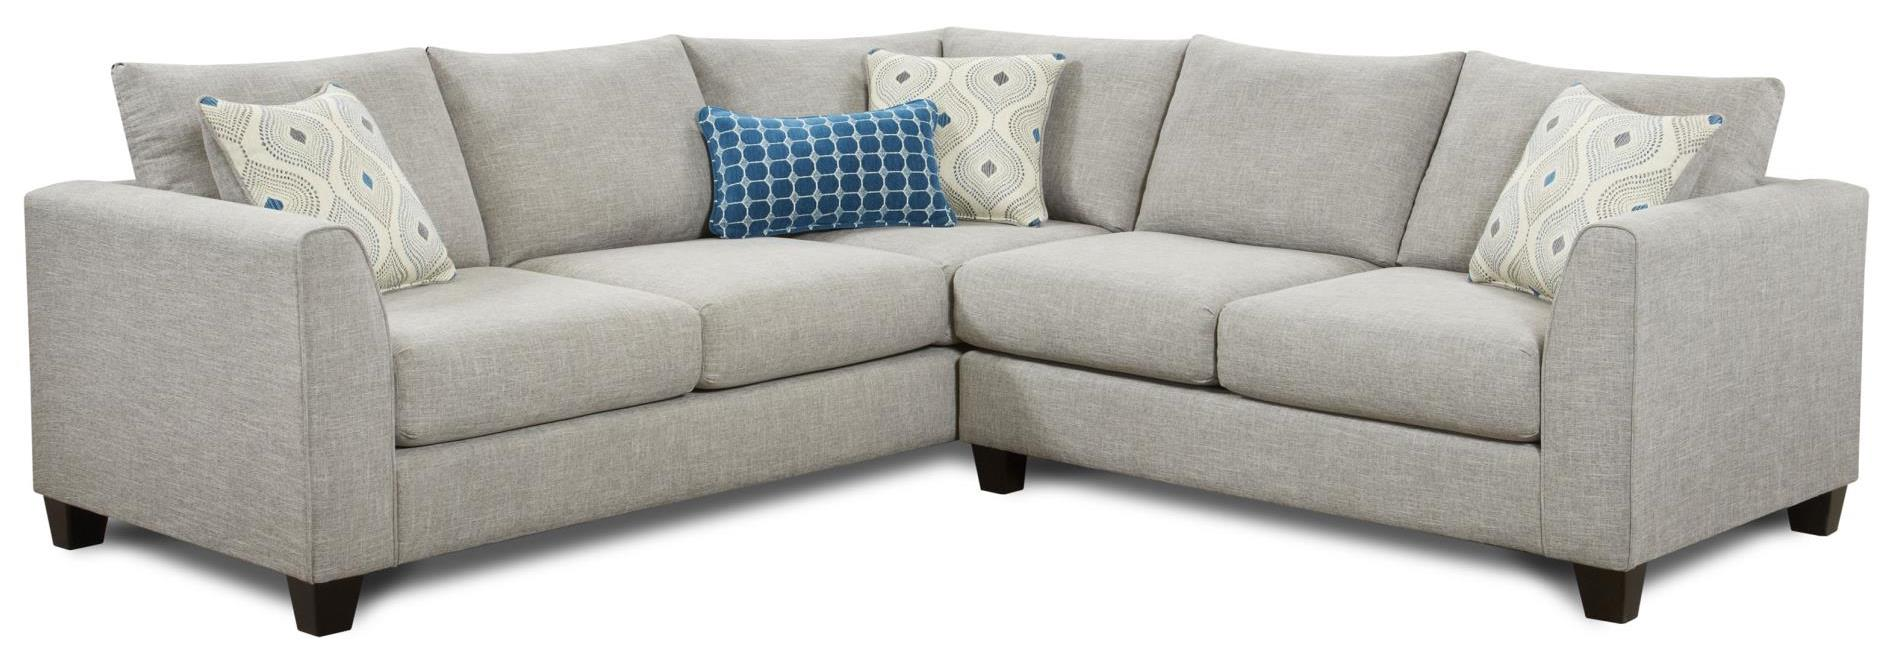 2800 2-Piece Sectional by Fusion Furniture at Prime Brothers Furniture